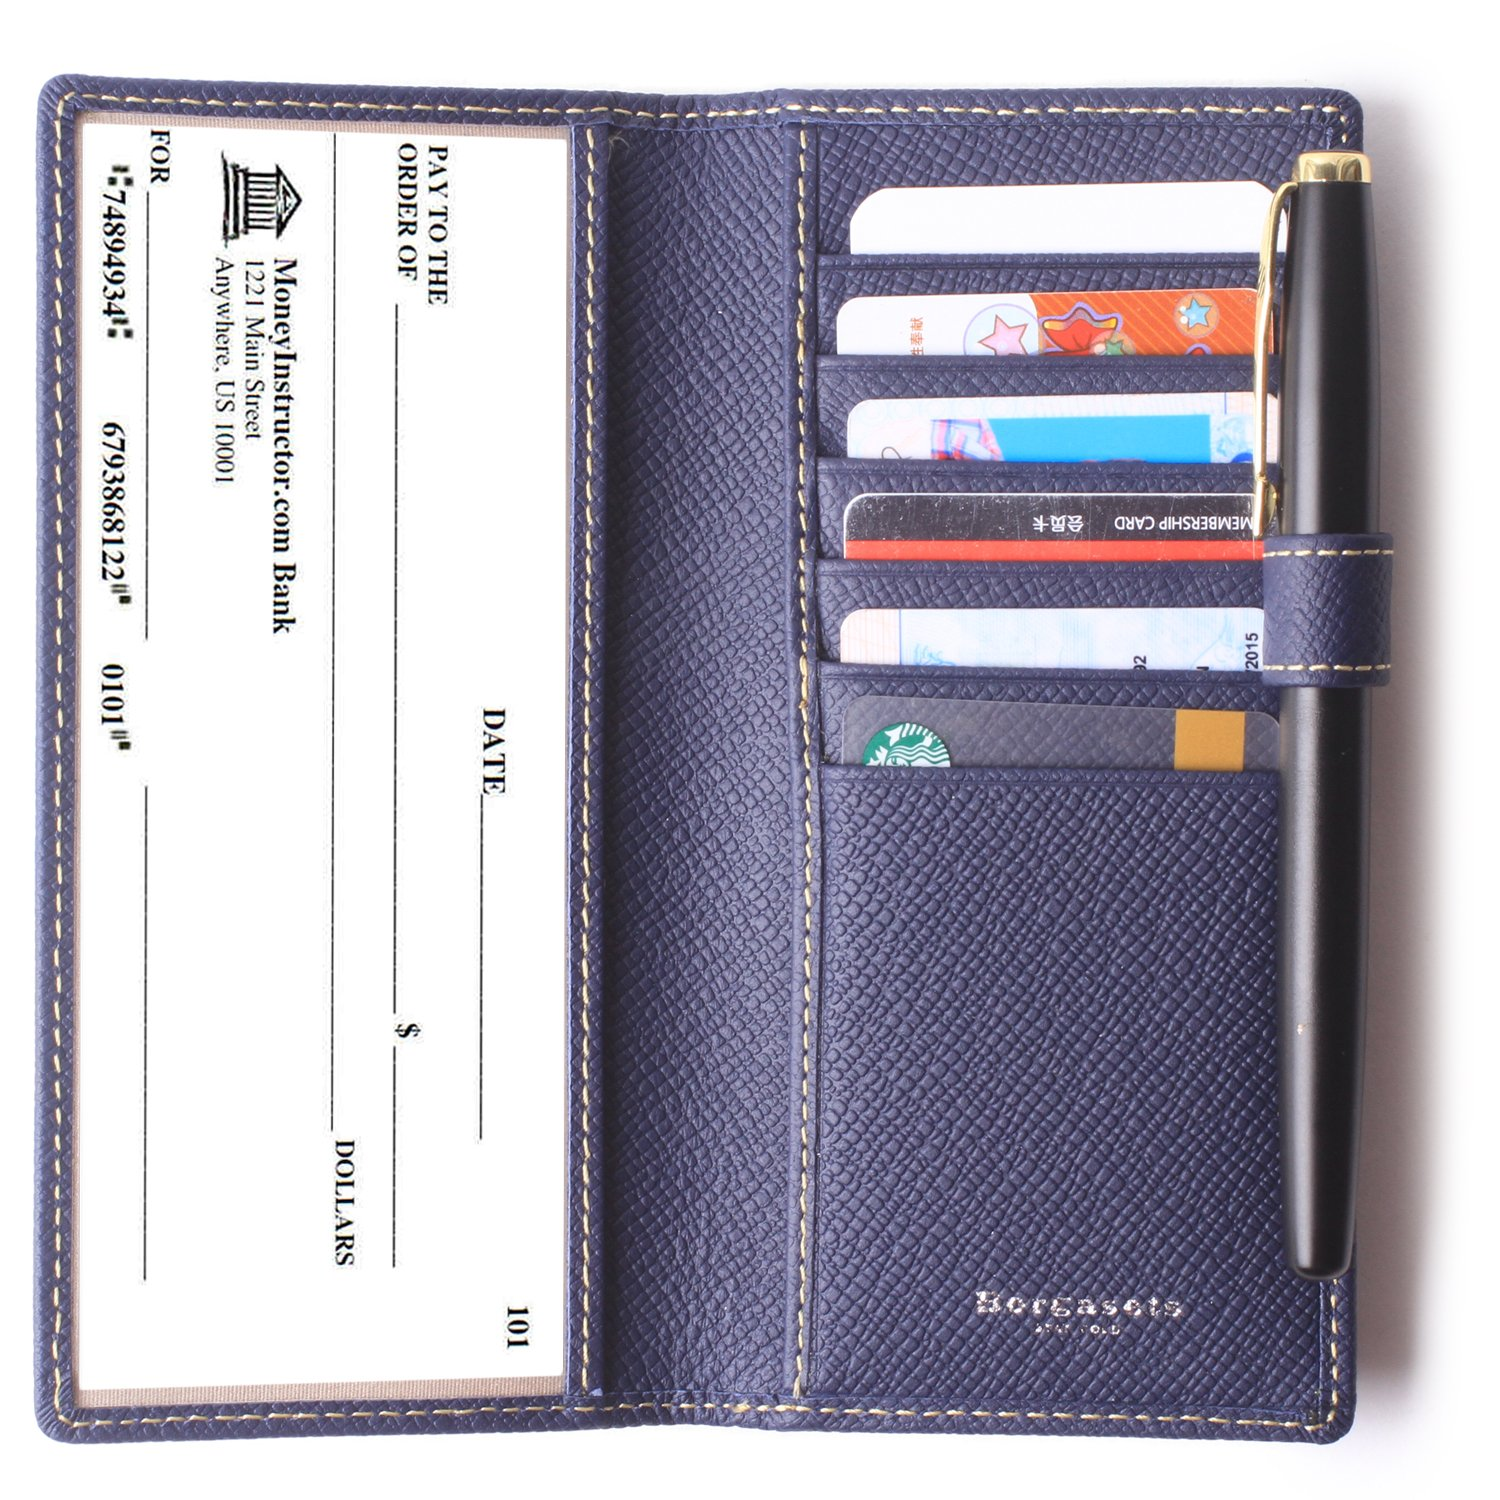 Genuine Leather Checkbook Cover For Men & Women - Checkbook Covers with Card Holder Wallet RFID Blocking (Blue)